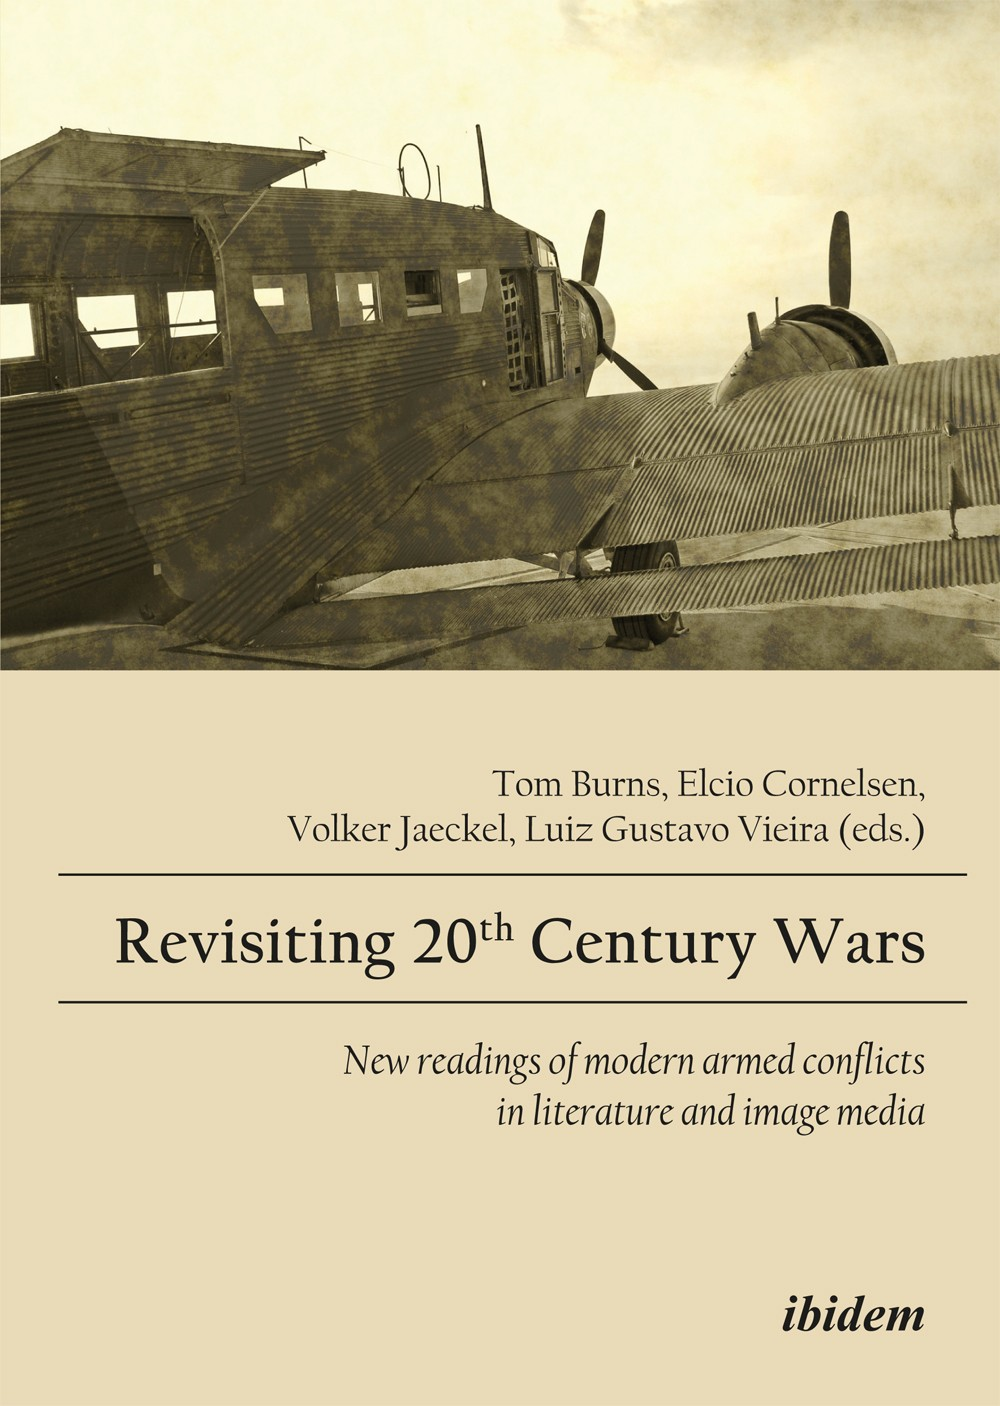 Revisiting 20th Century Wars